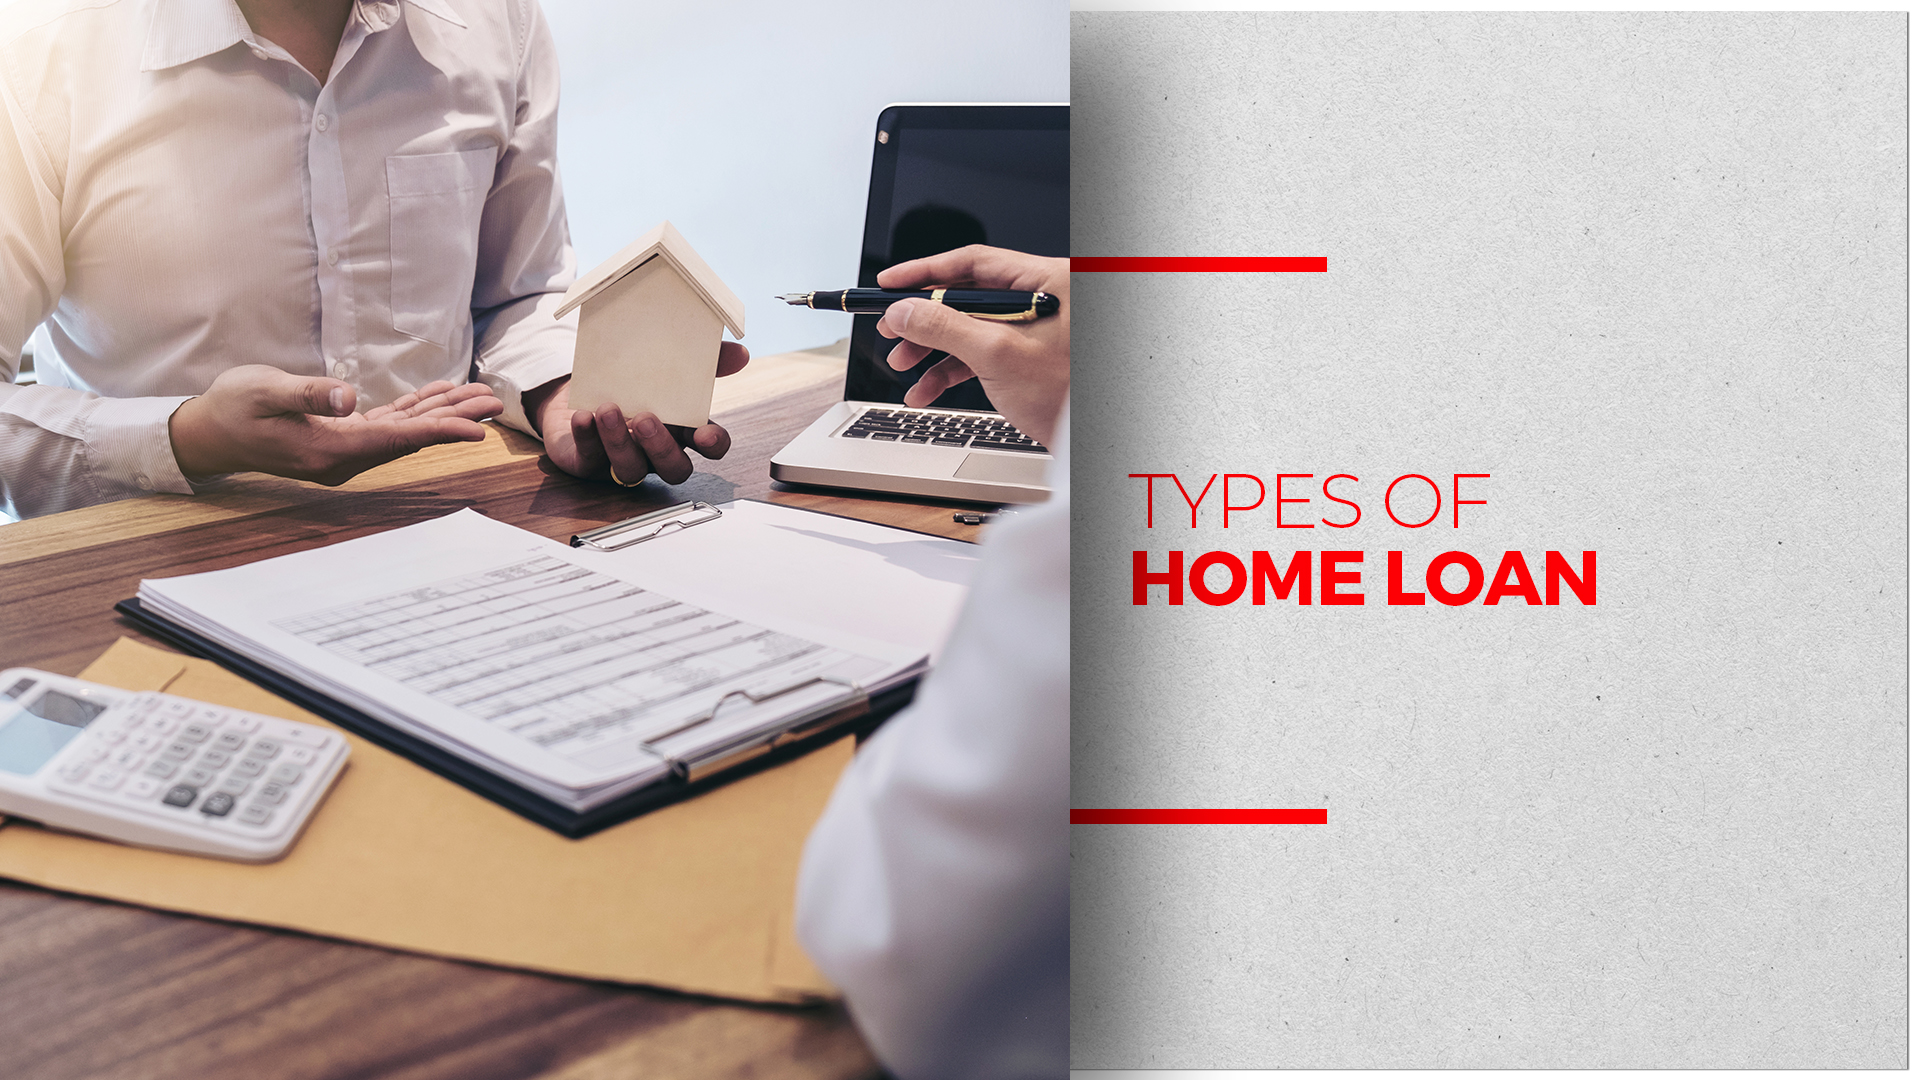 Types Of Home Loans Every Home Buyer Should Know About